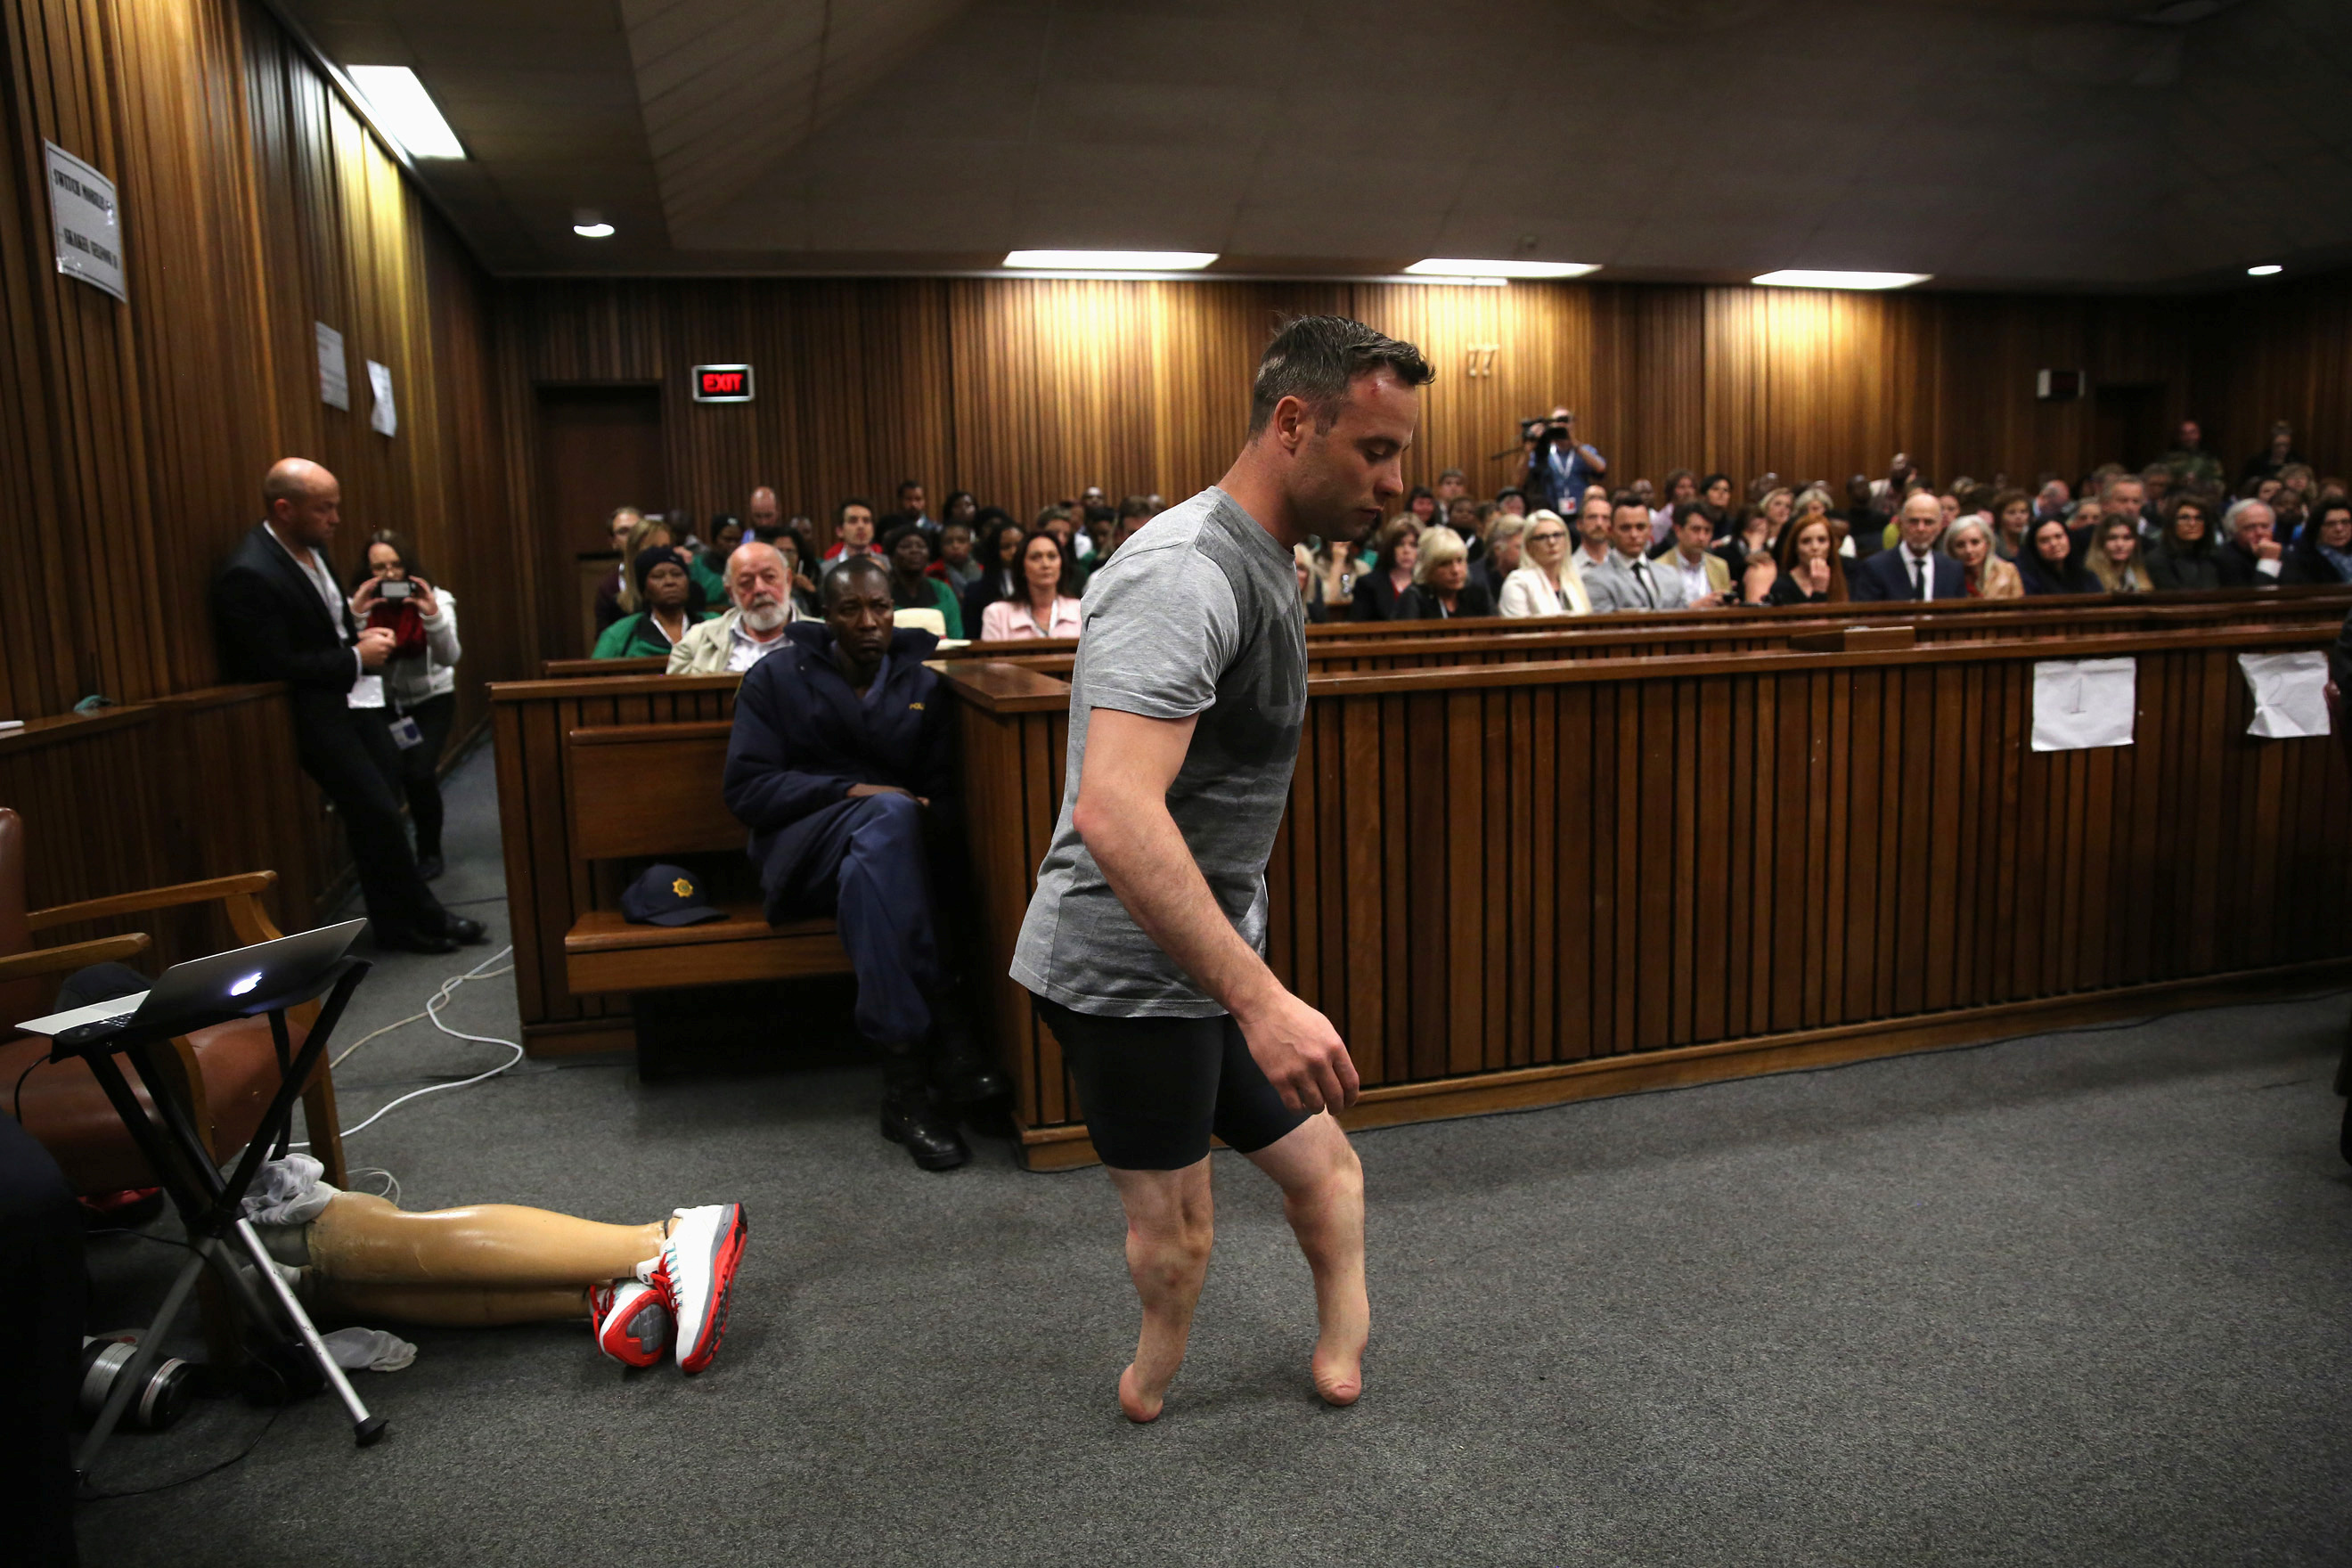 Paralympic gold medalist Oscar Pistorius walks across the courtroom without his prosthetic legs during the third day of the resentencing hearing for the 2013 murder of his girlfriend Reeva Steenkamp, at Pretoria High Court